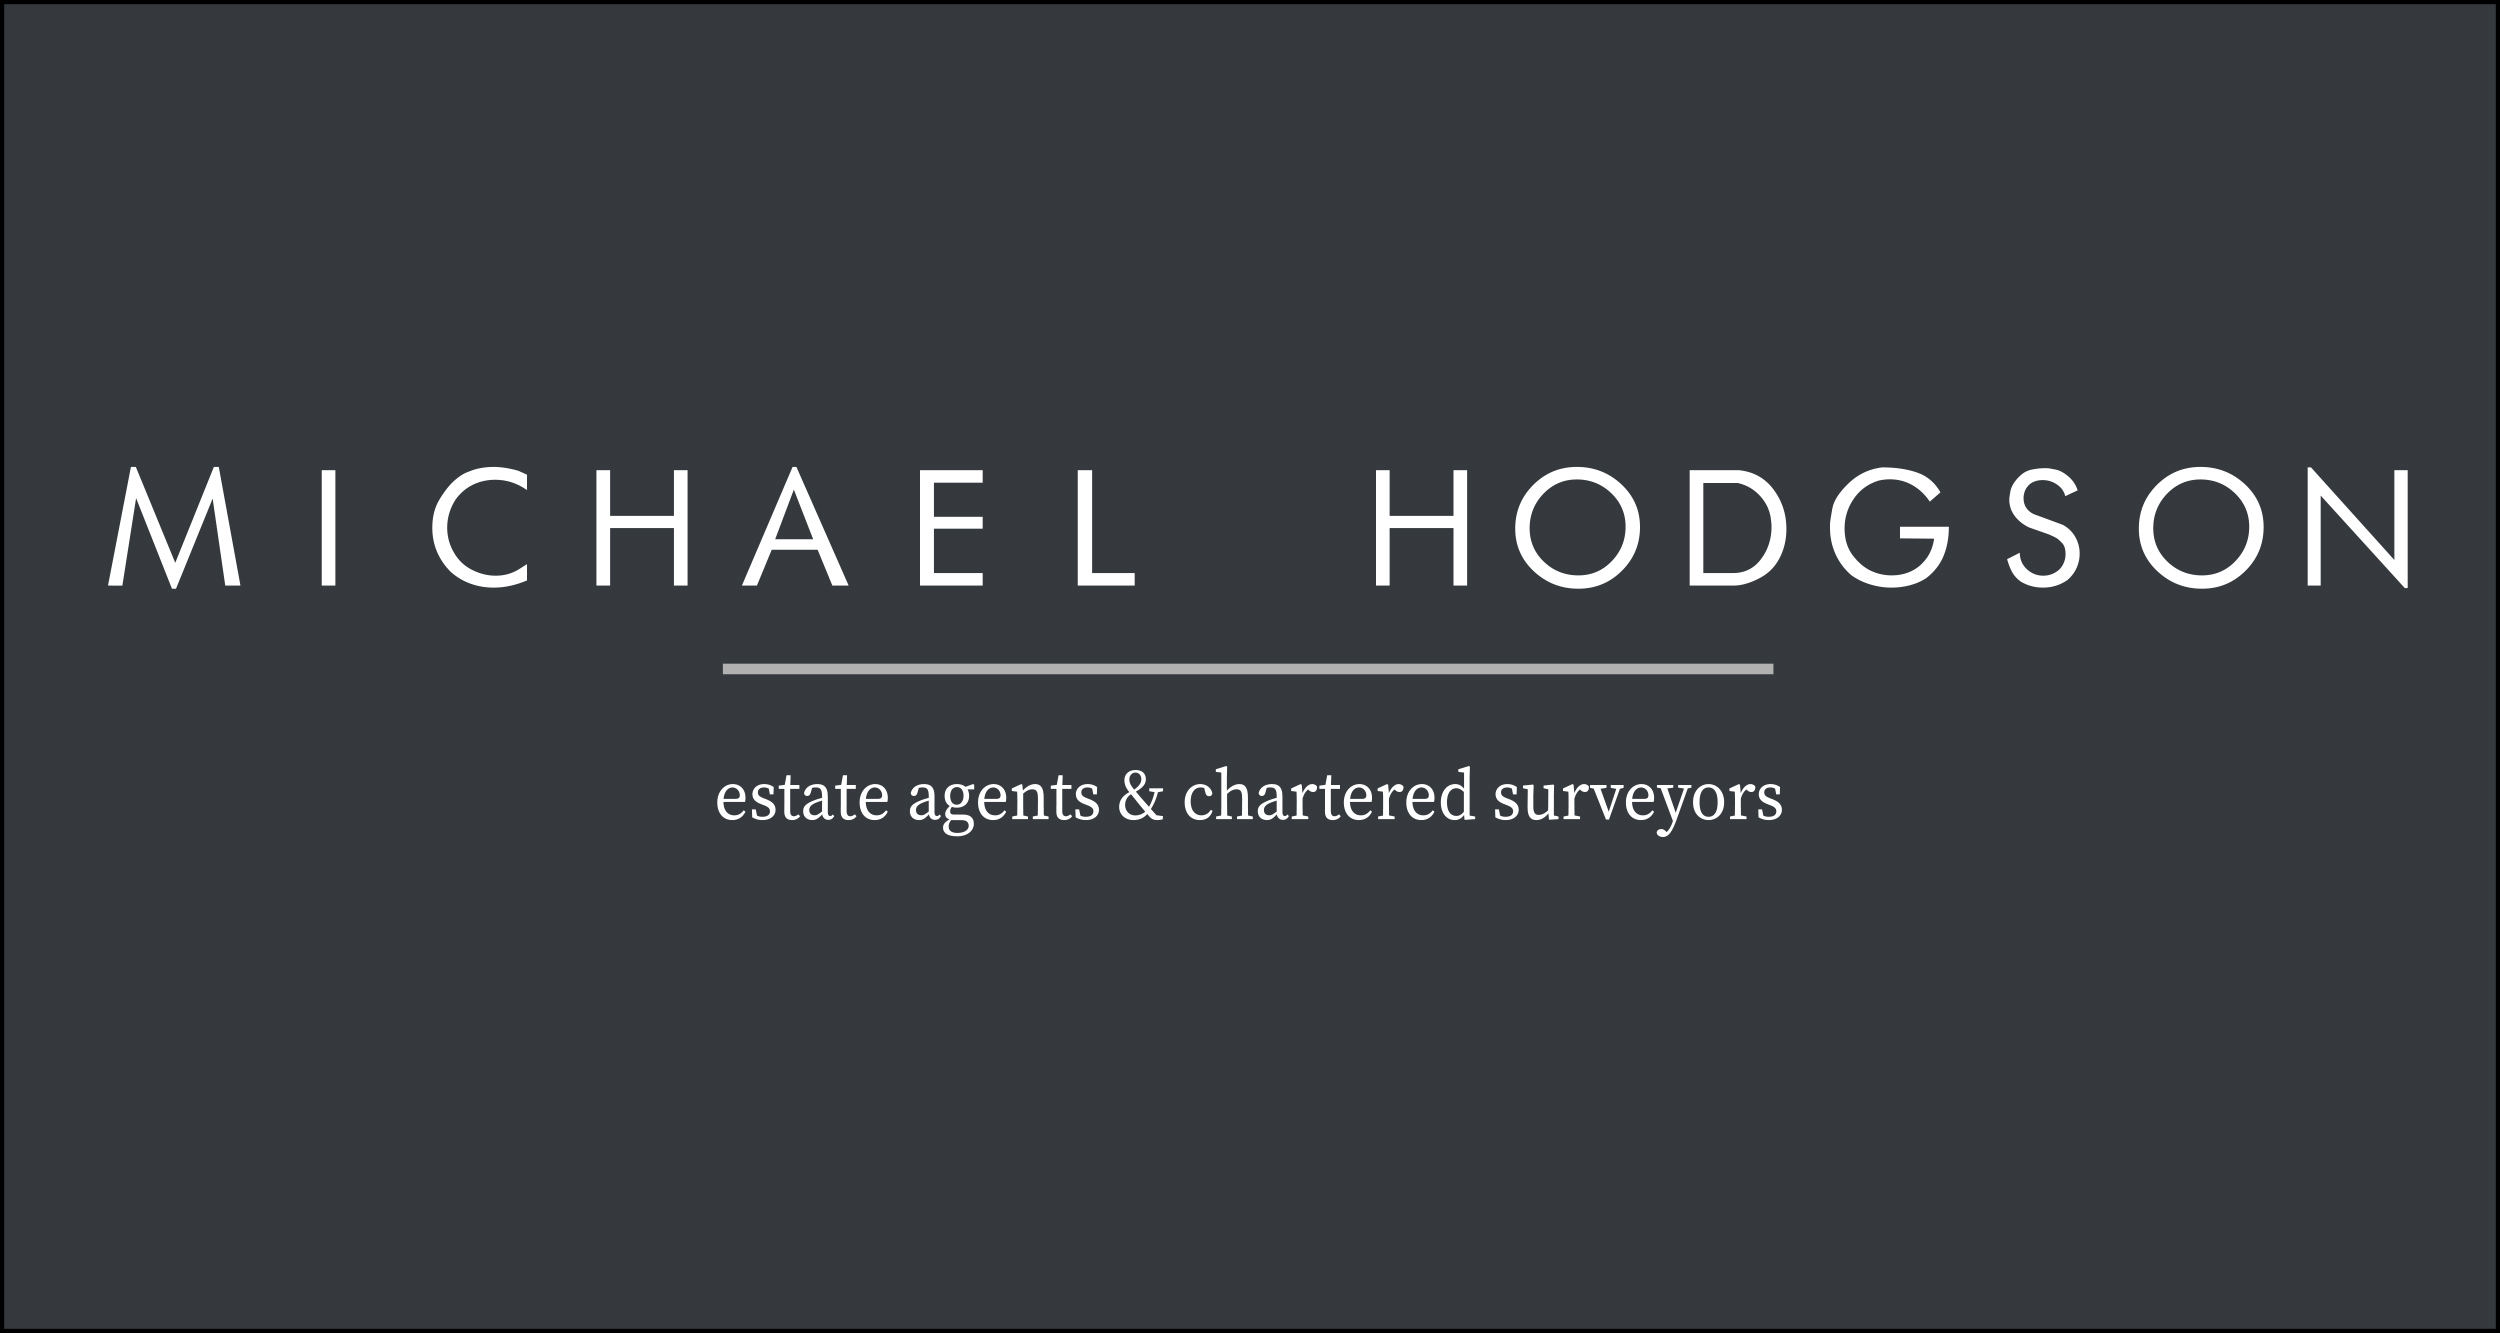 Michael Hodgson Chartered Surveyors & Estate Agents